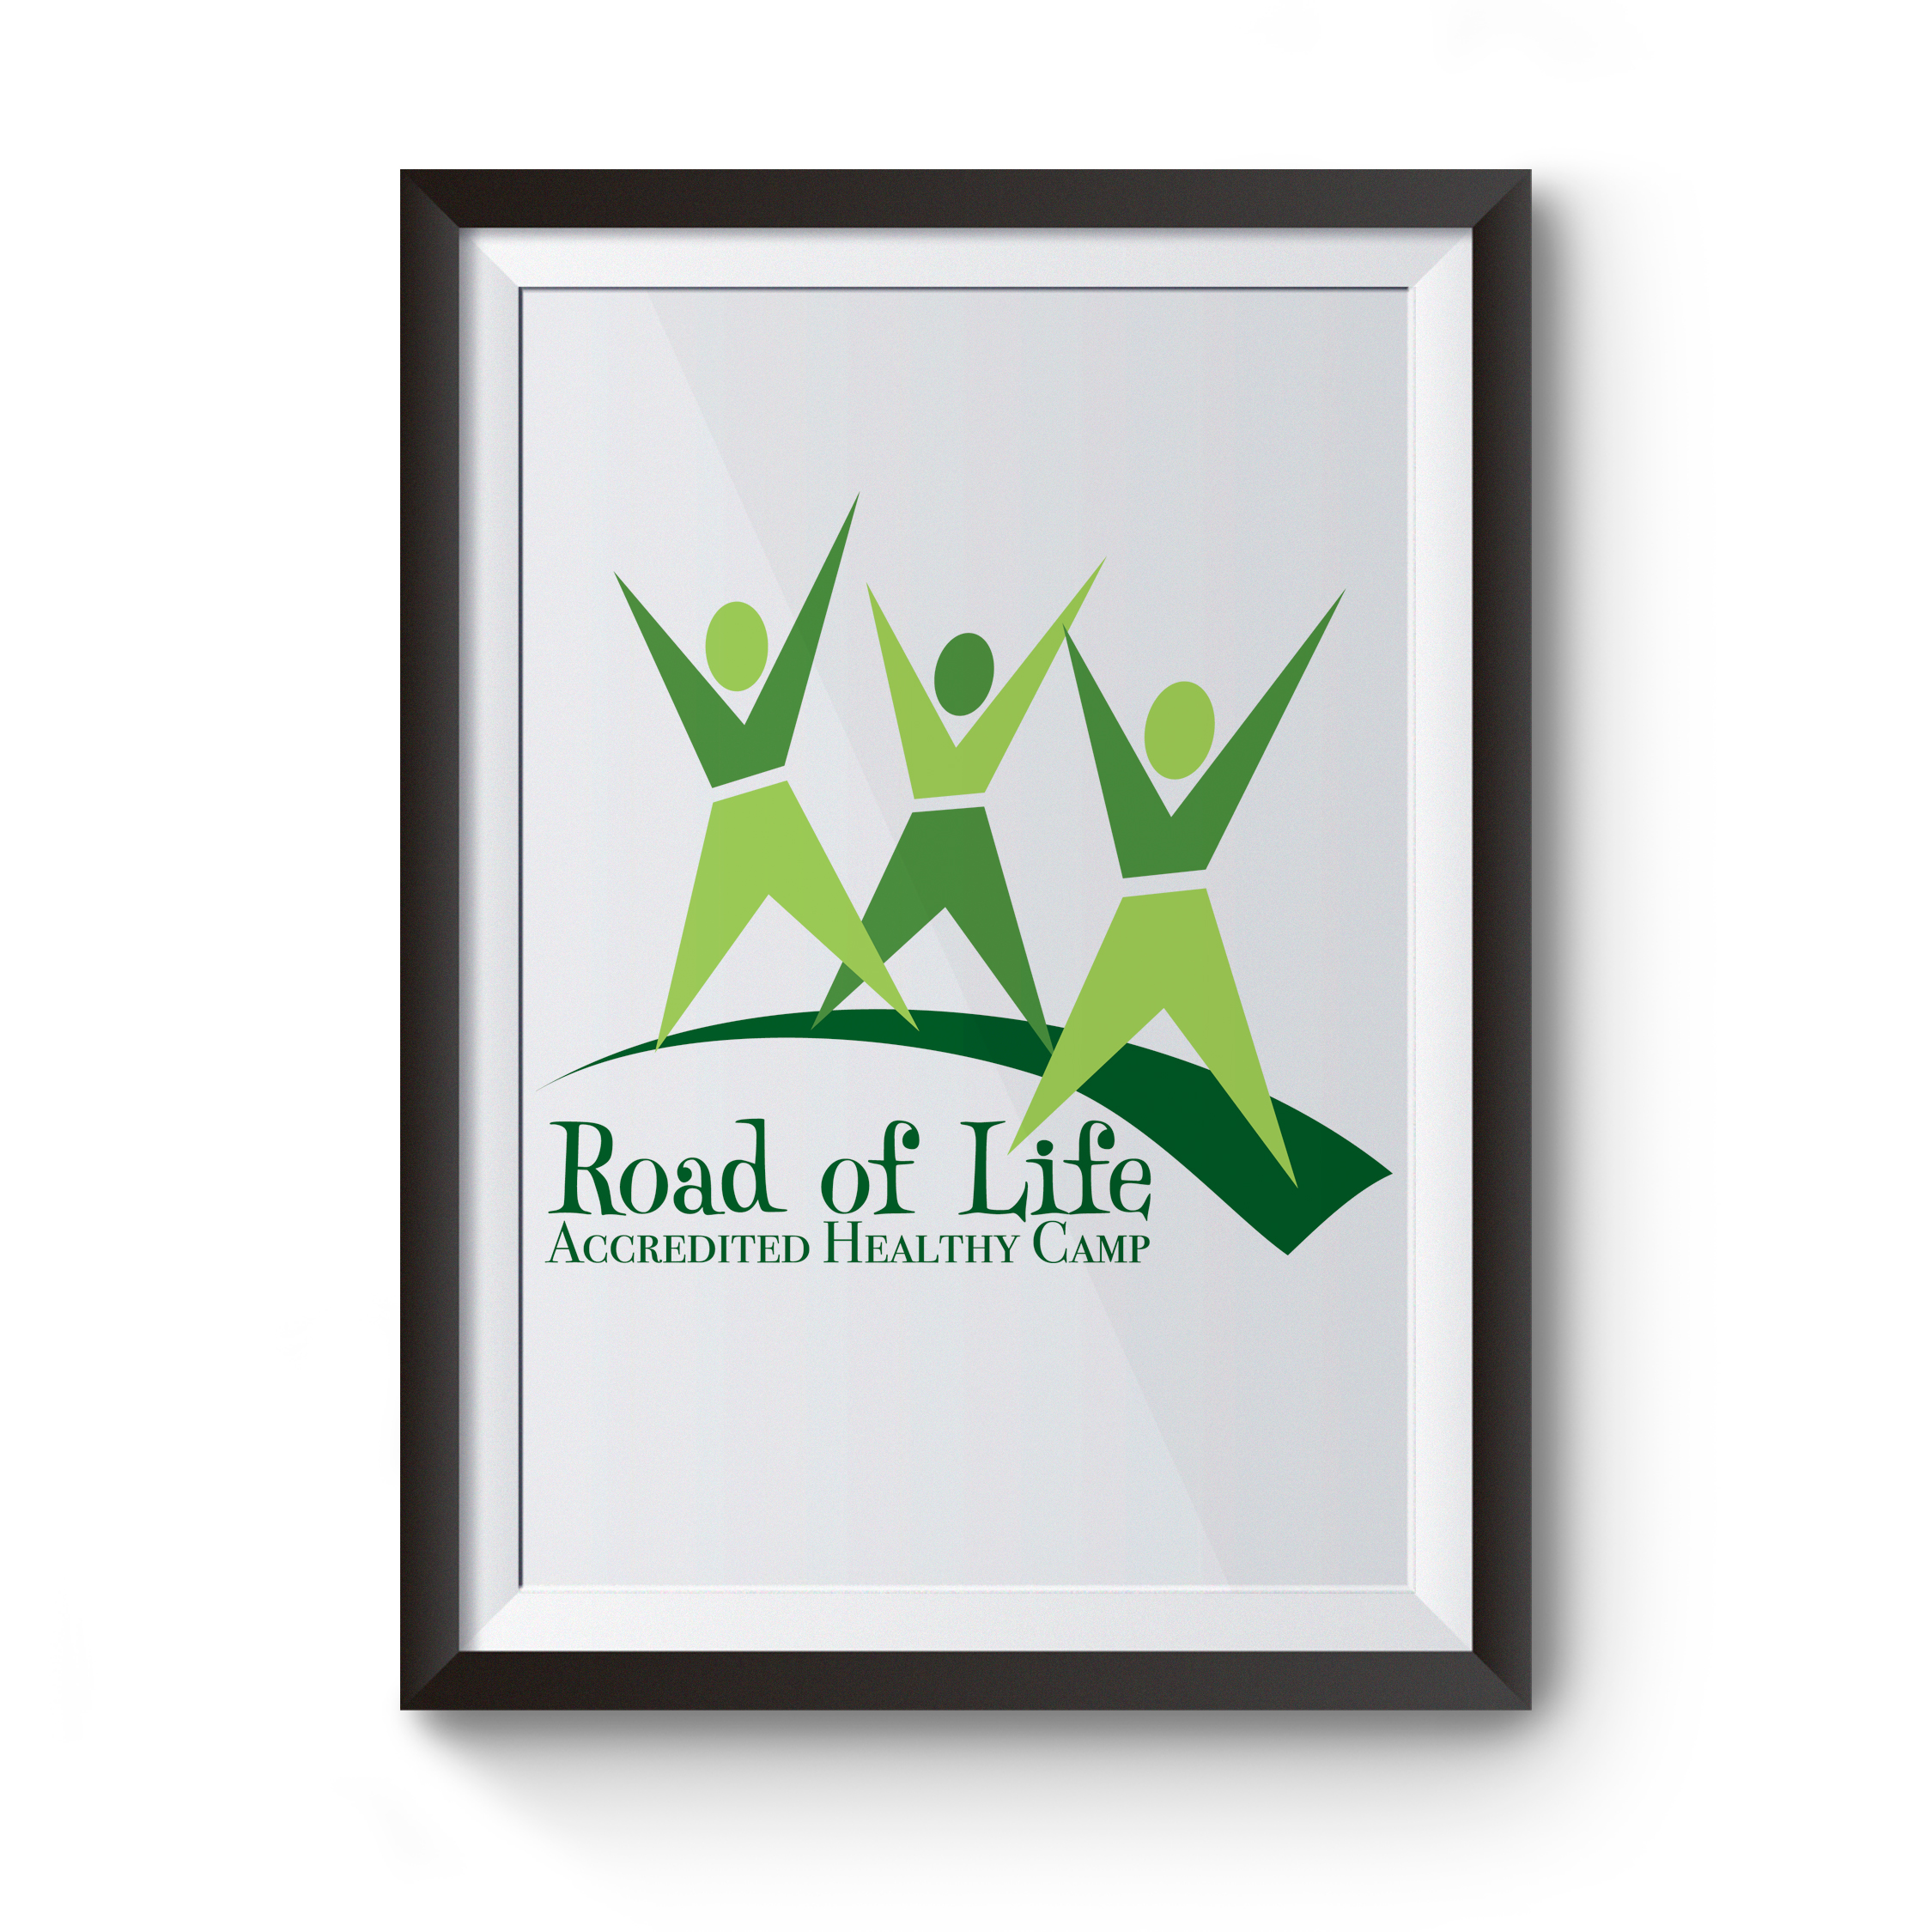 roadoflife_logo.jpg